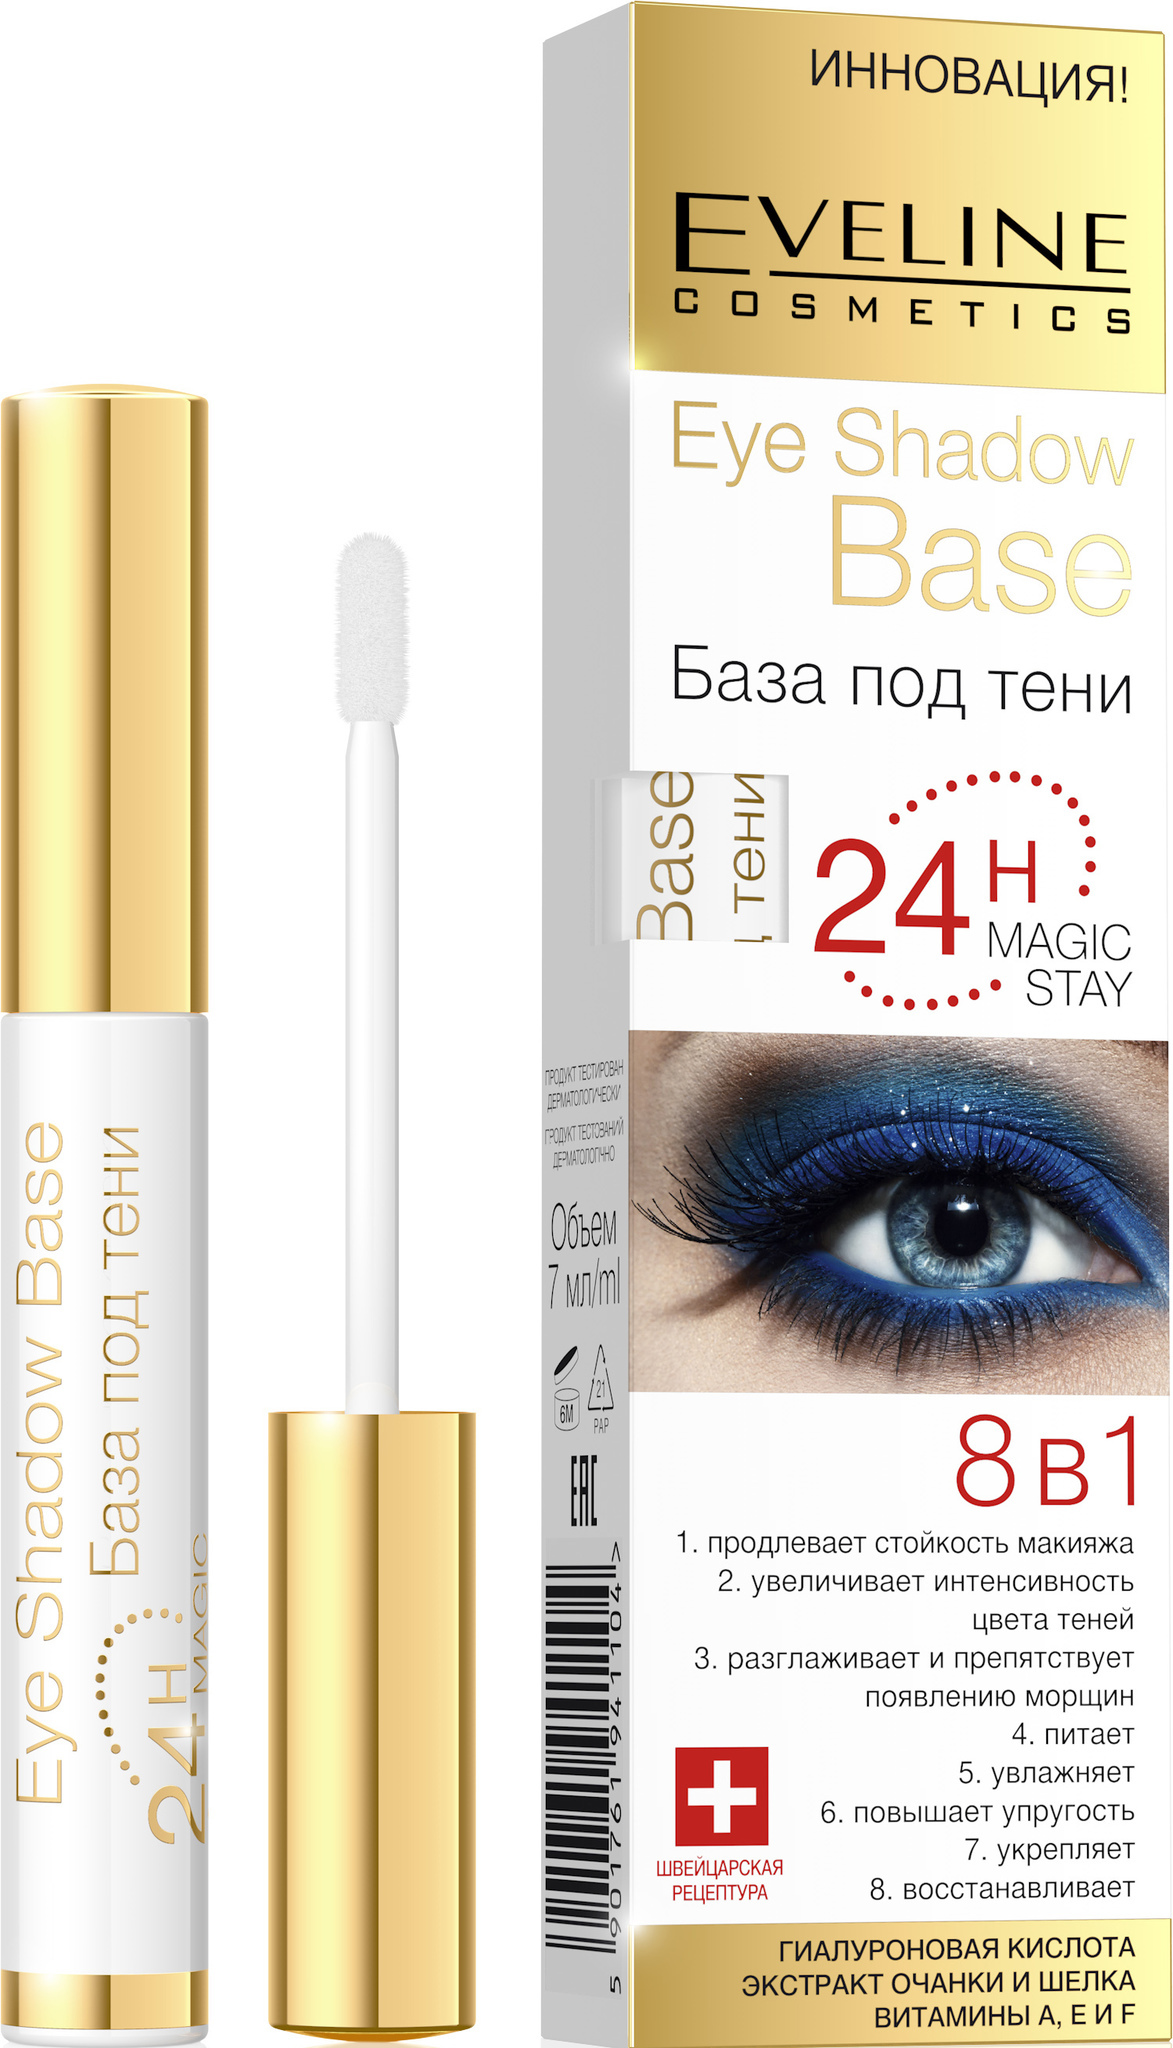 EYE SHADOW BASE БАЗА ПОД ТЕНИ, 7мл